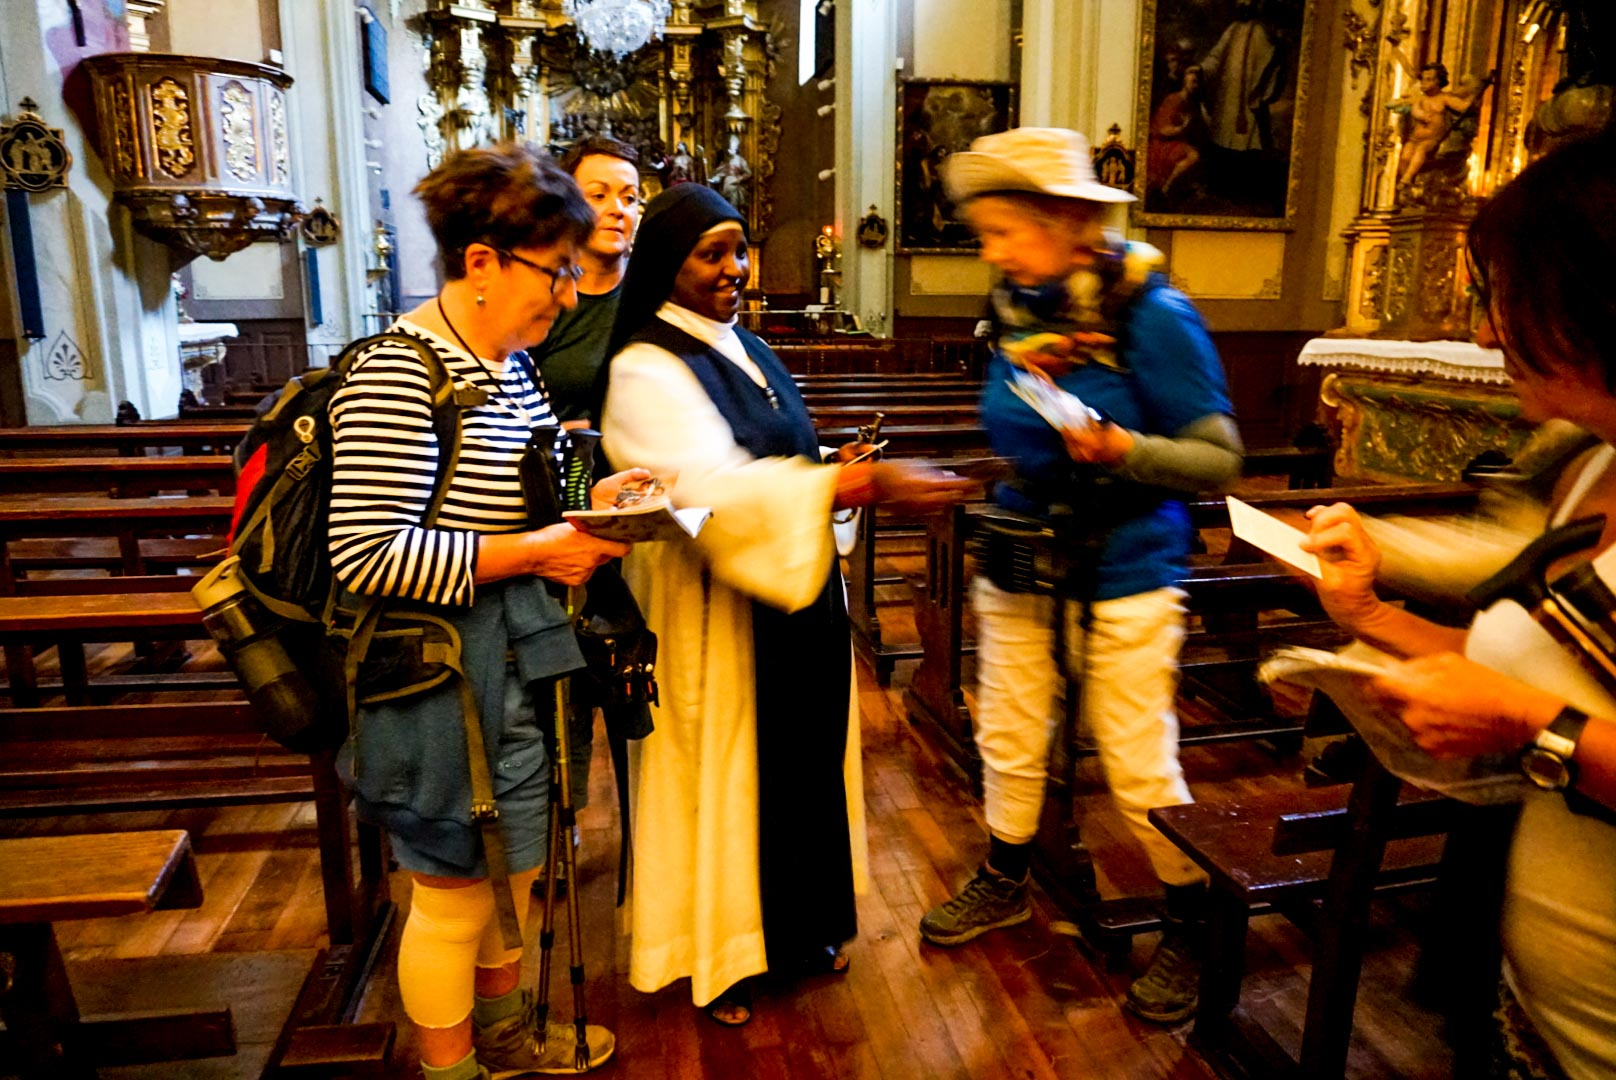 Four people getting their Camino passports stamped by a nuns in a church.